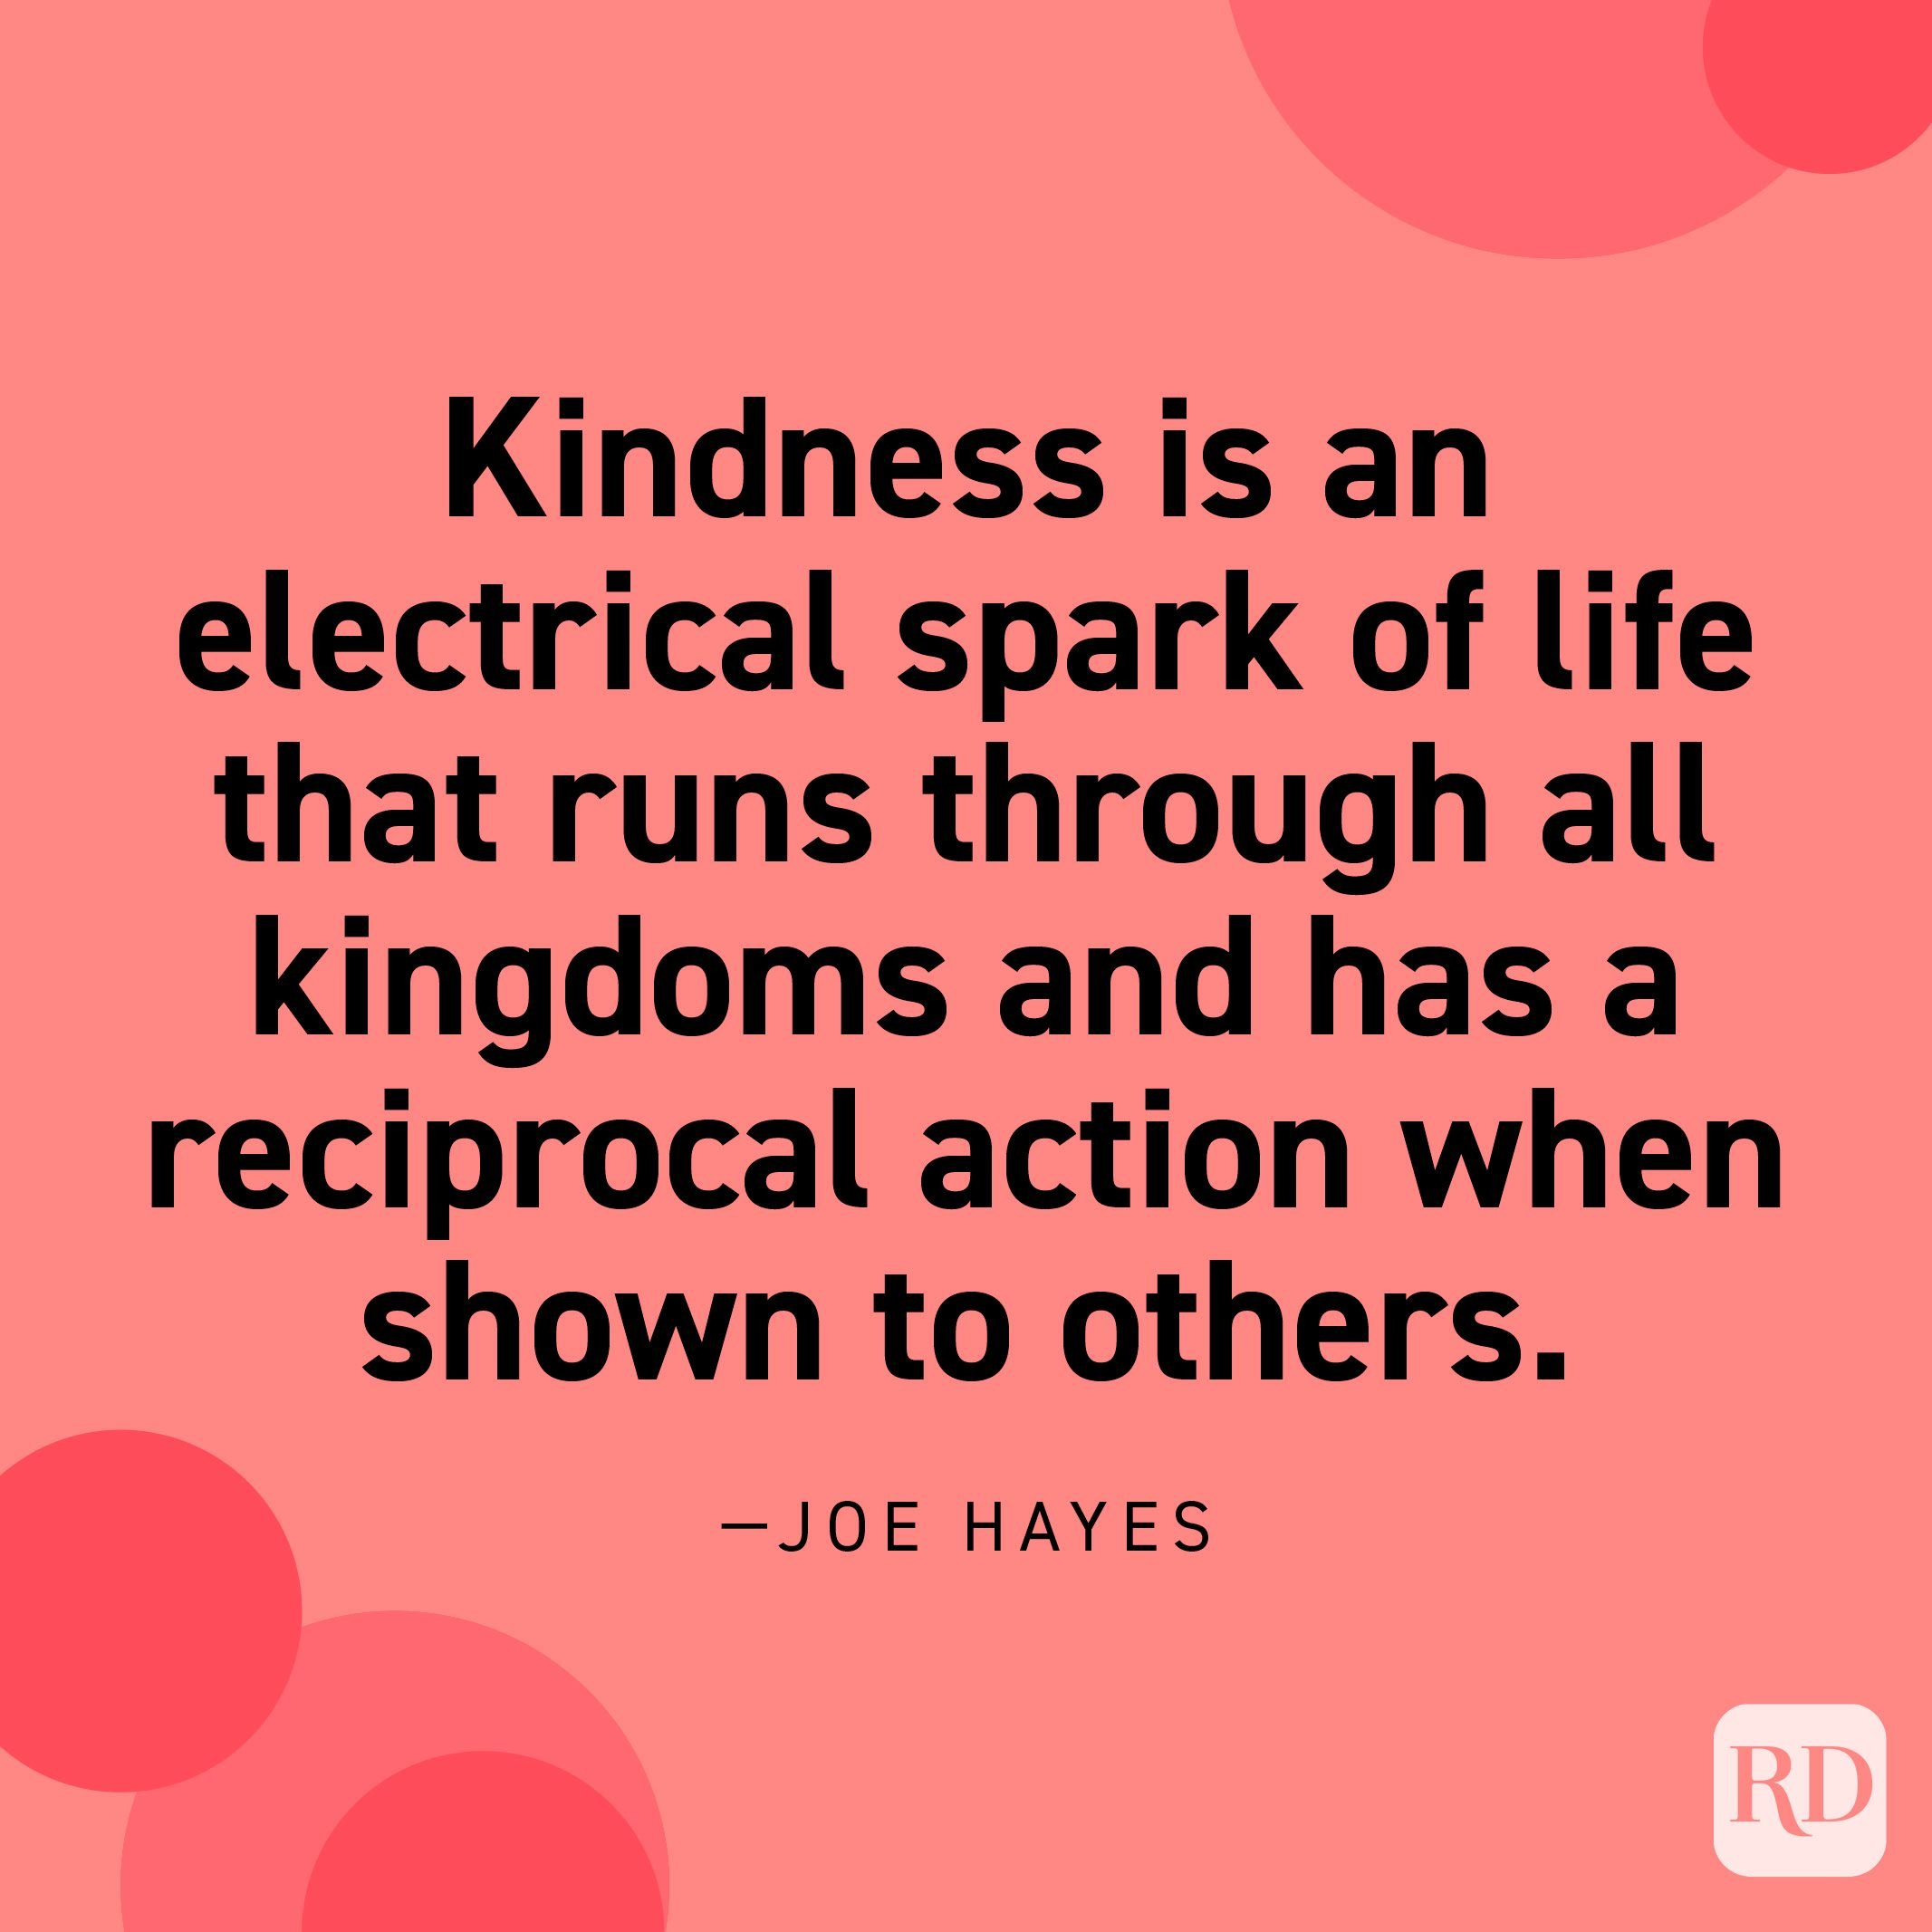 """""""Kindness is an electrical spark of life that runs through all kingdoms and has a reciprocal action when shown to others."""" —Joe Hayes."""